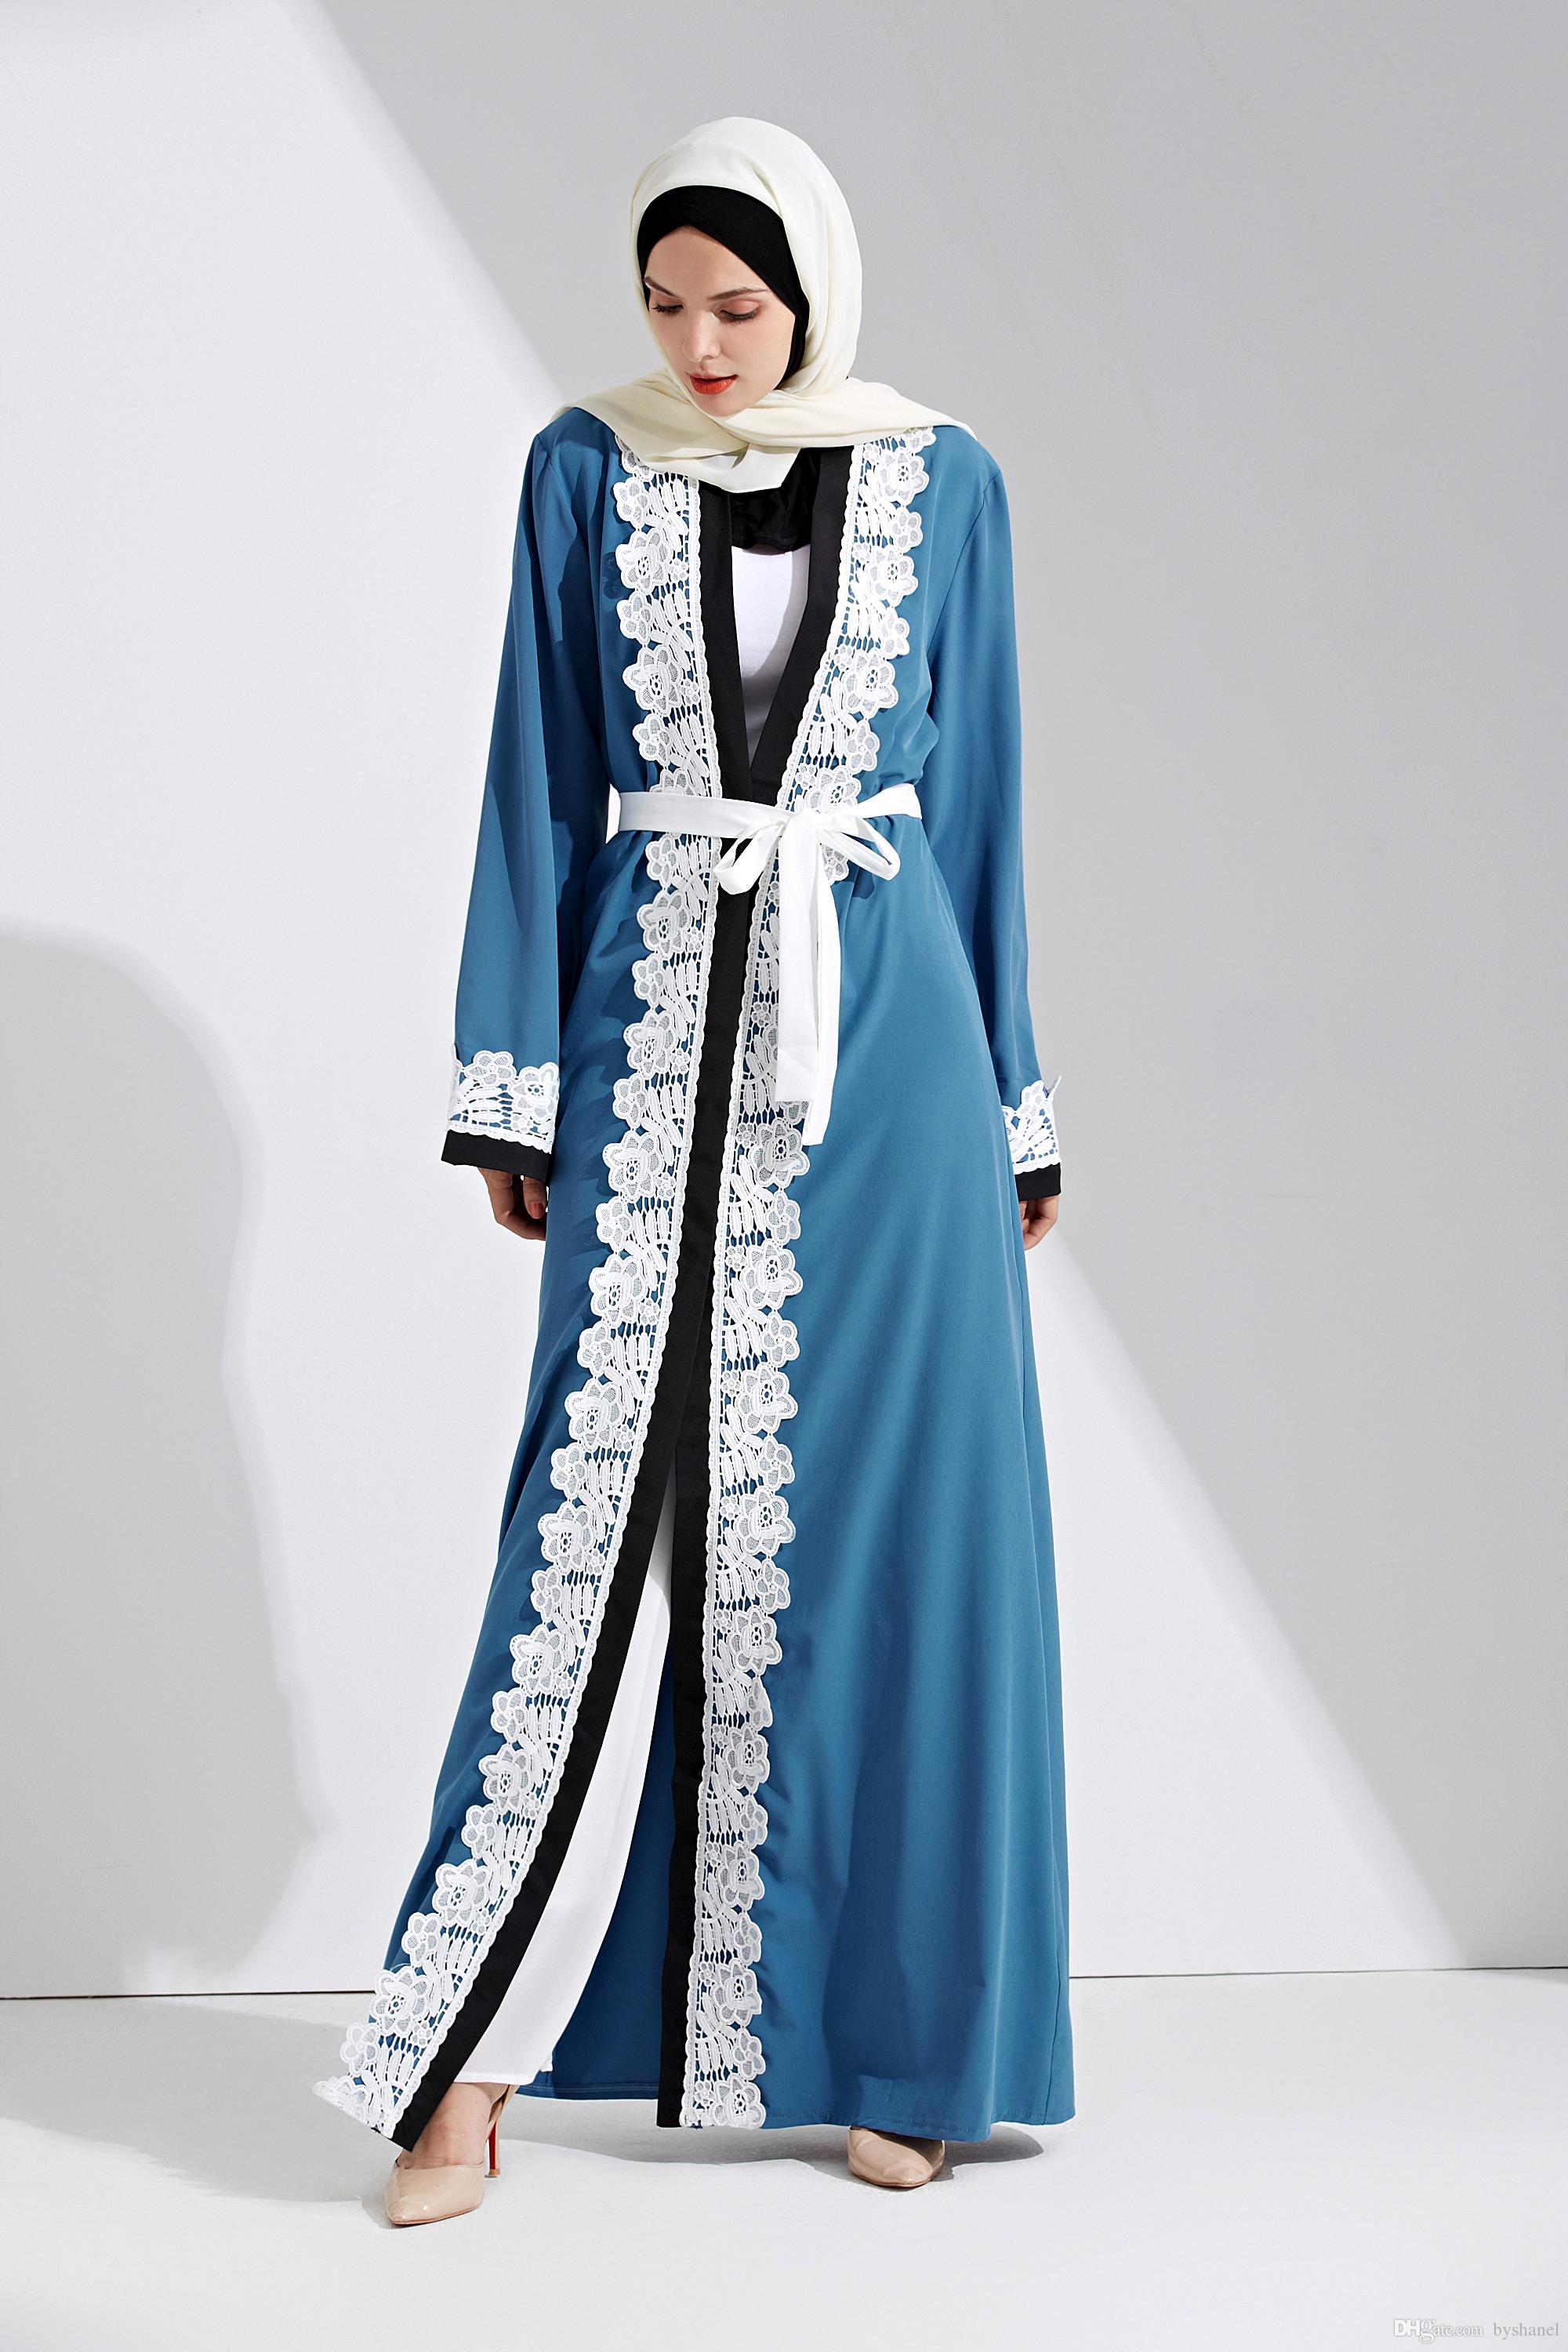 0553e61c072a 2019 Islamic Women Wear New Model Abaya In Dubai 2018 Popular In Stock  Muslim Kimono Dubai Front Open Abaya From Byshanel, $25.13 | DHgate.Com